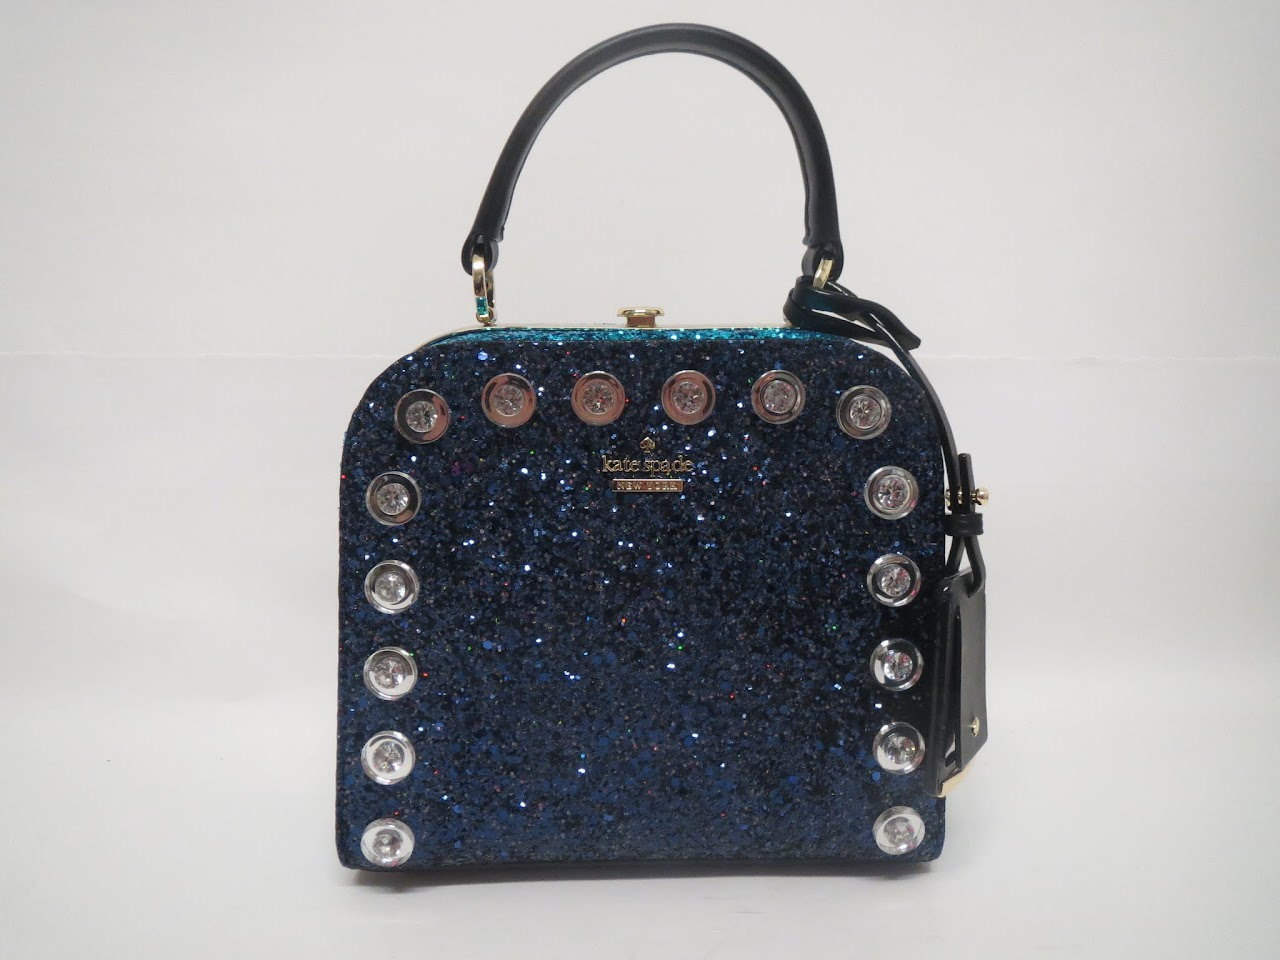 Kate Spade Bedazzled Evening Bag